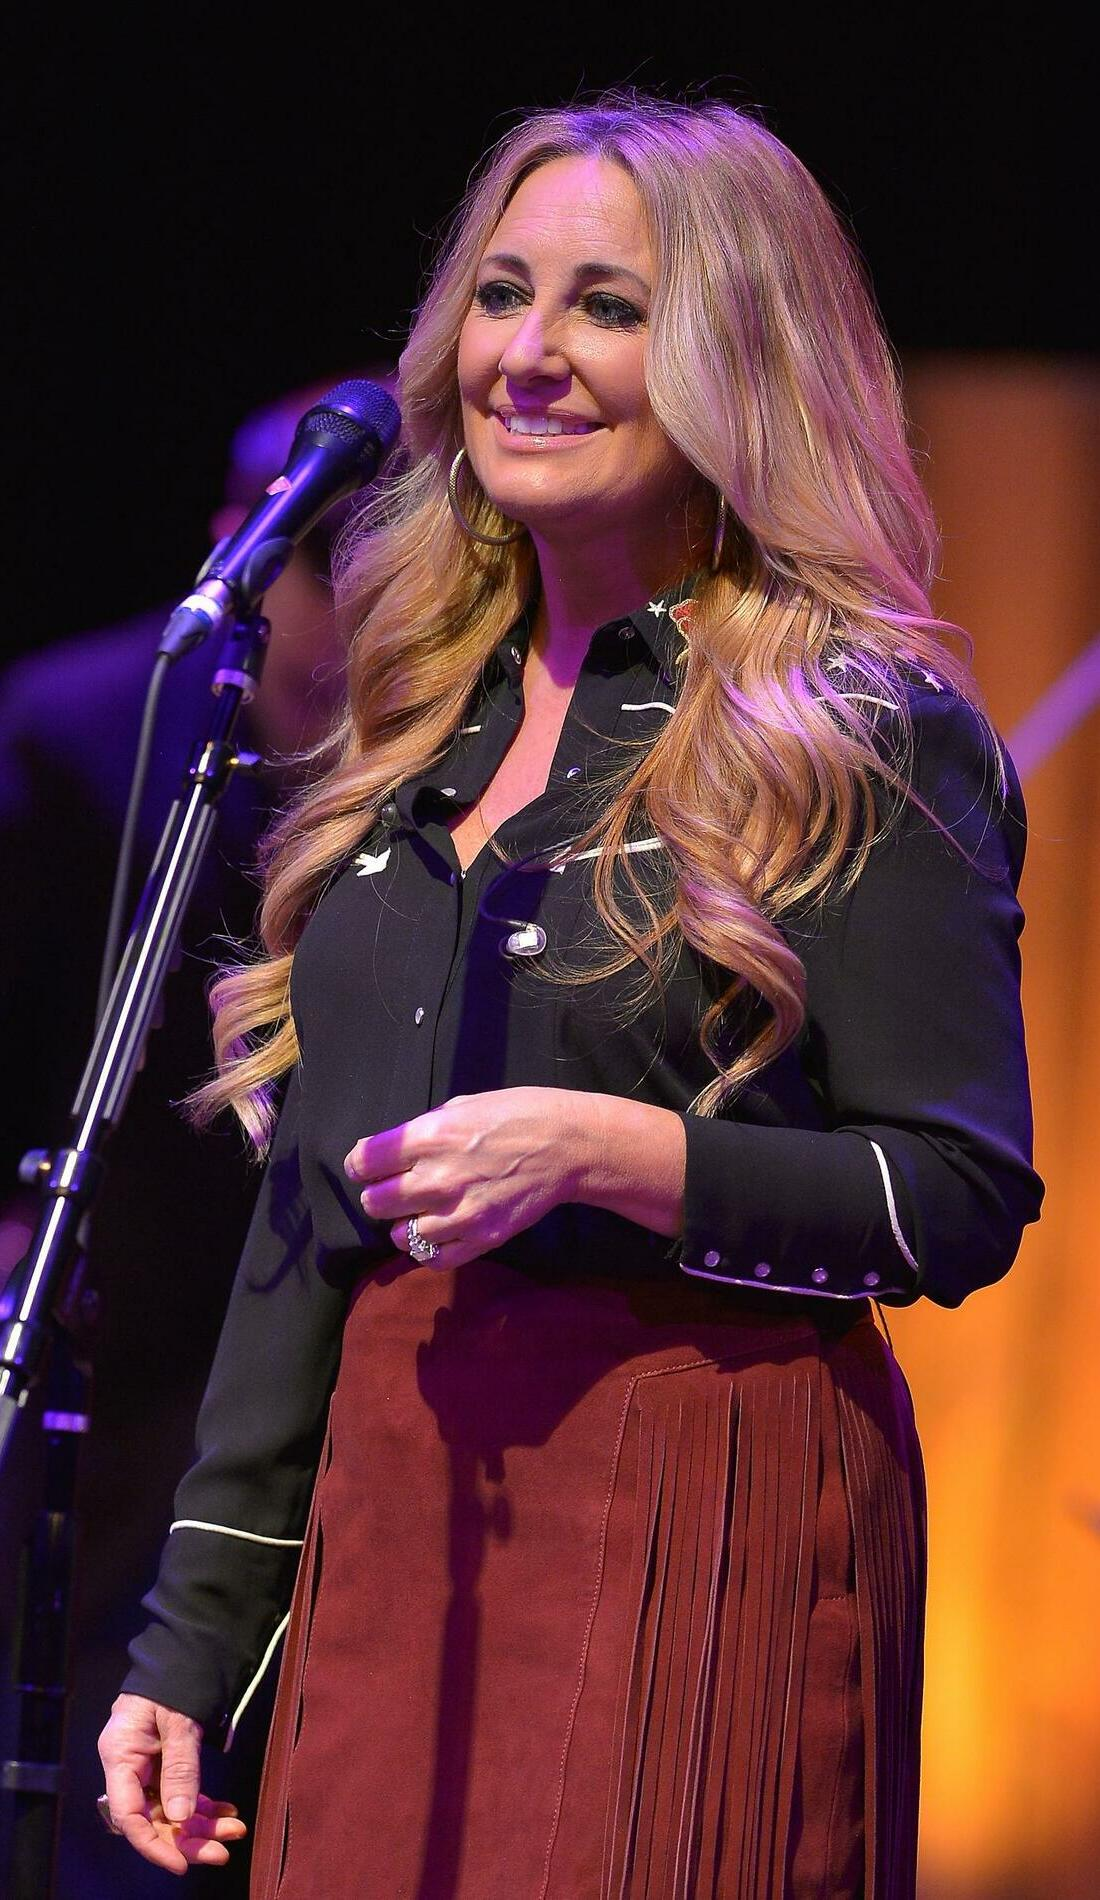 A Lee Ann Womack live event